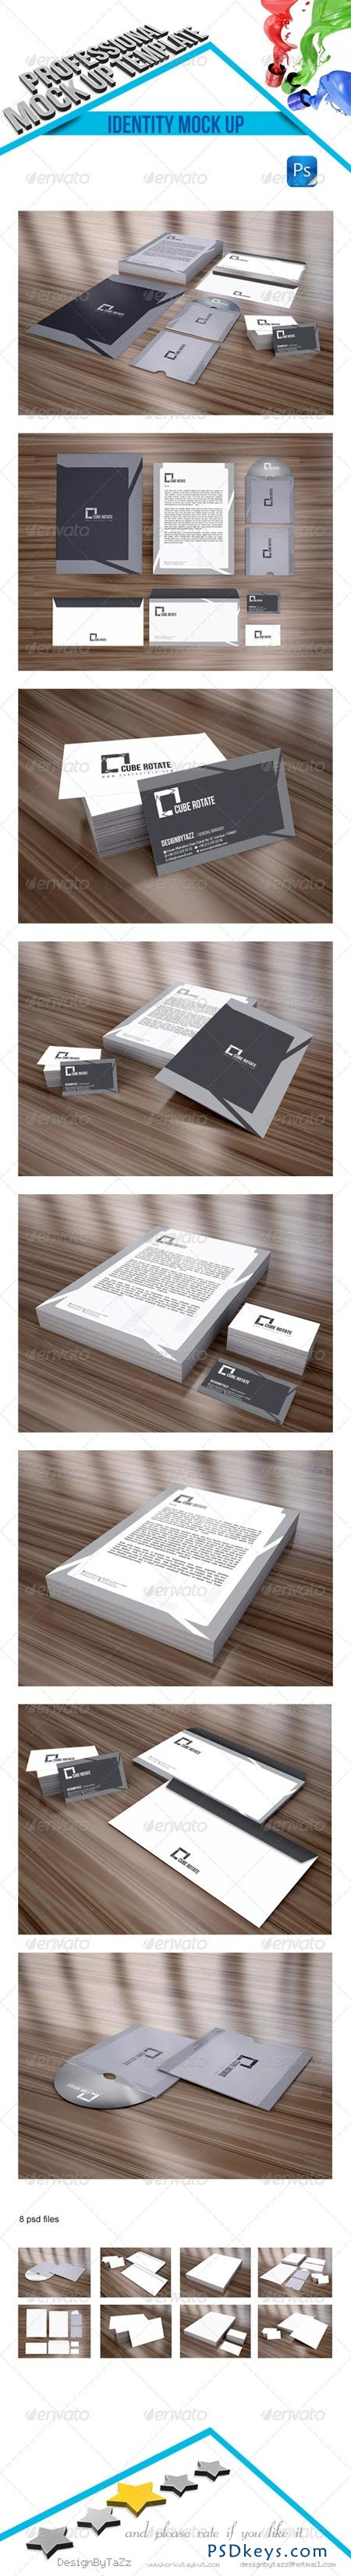 Stationery Branding Mock-Up v2 4542155